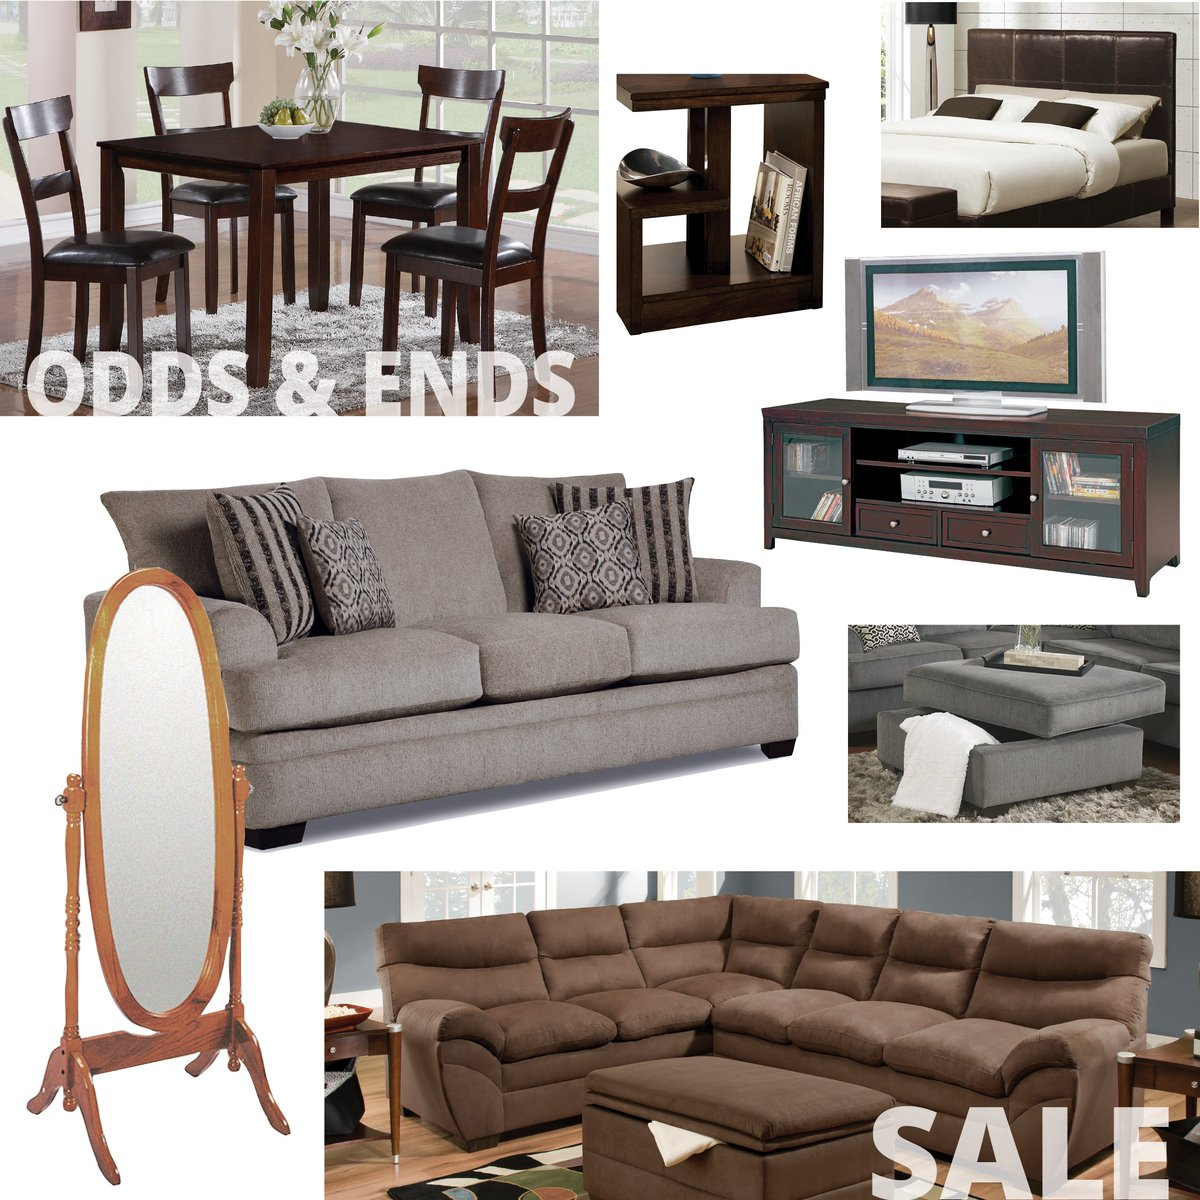 Other: Darvin Furniture Official Site,Clearance Furniture In The Orland Park  Chicago IL Area,Darvin Furniture In Orland Park IL Mattress Store,Darvin ...